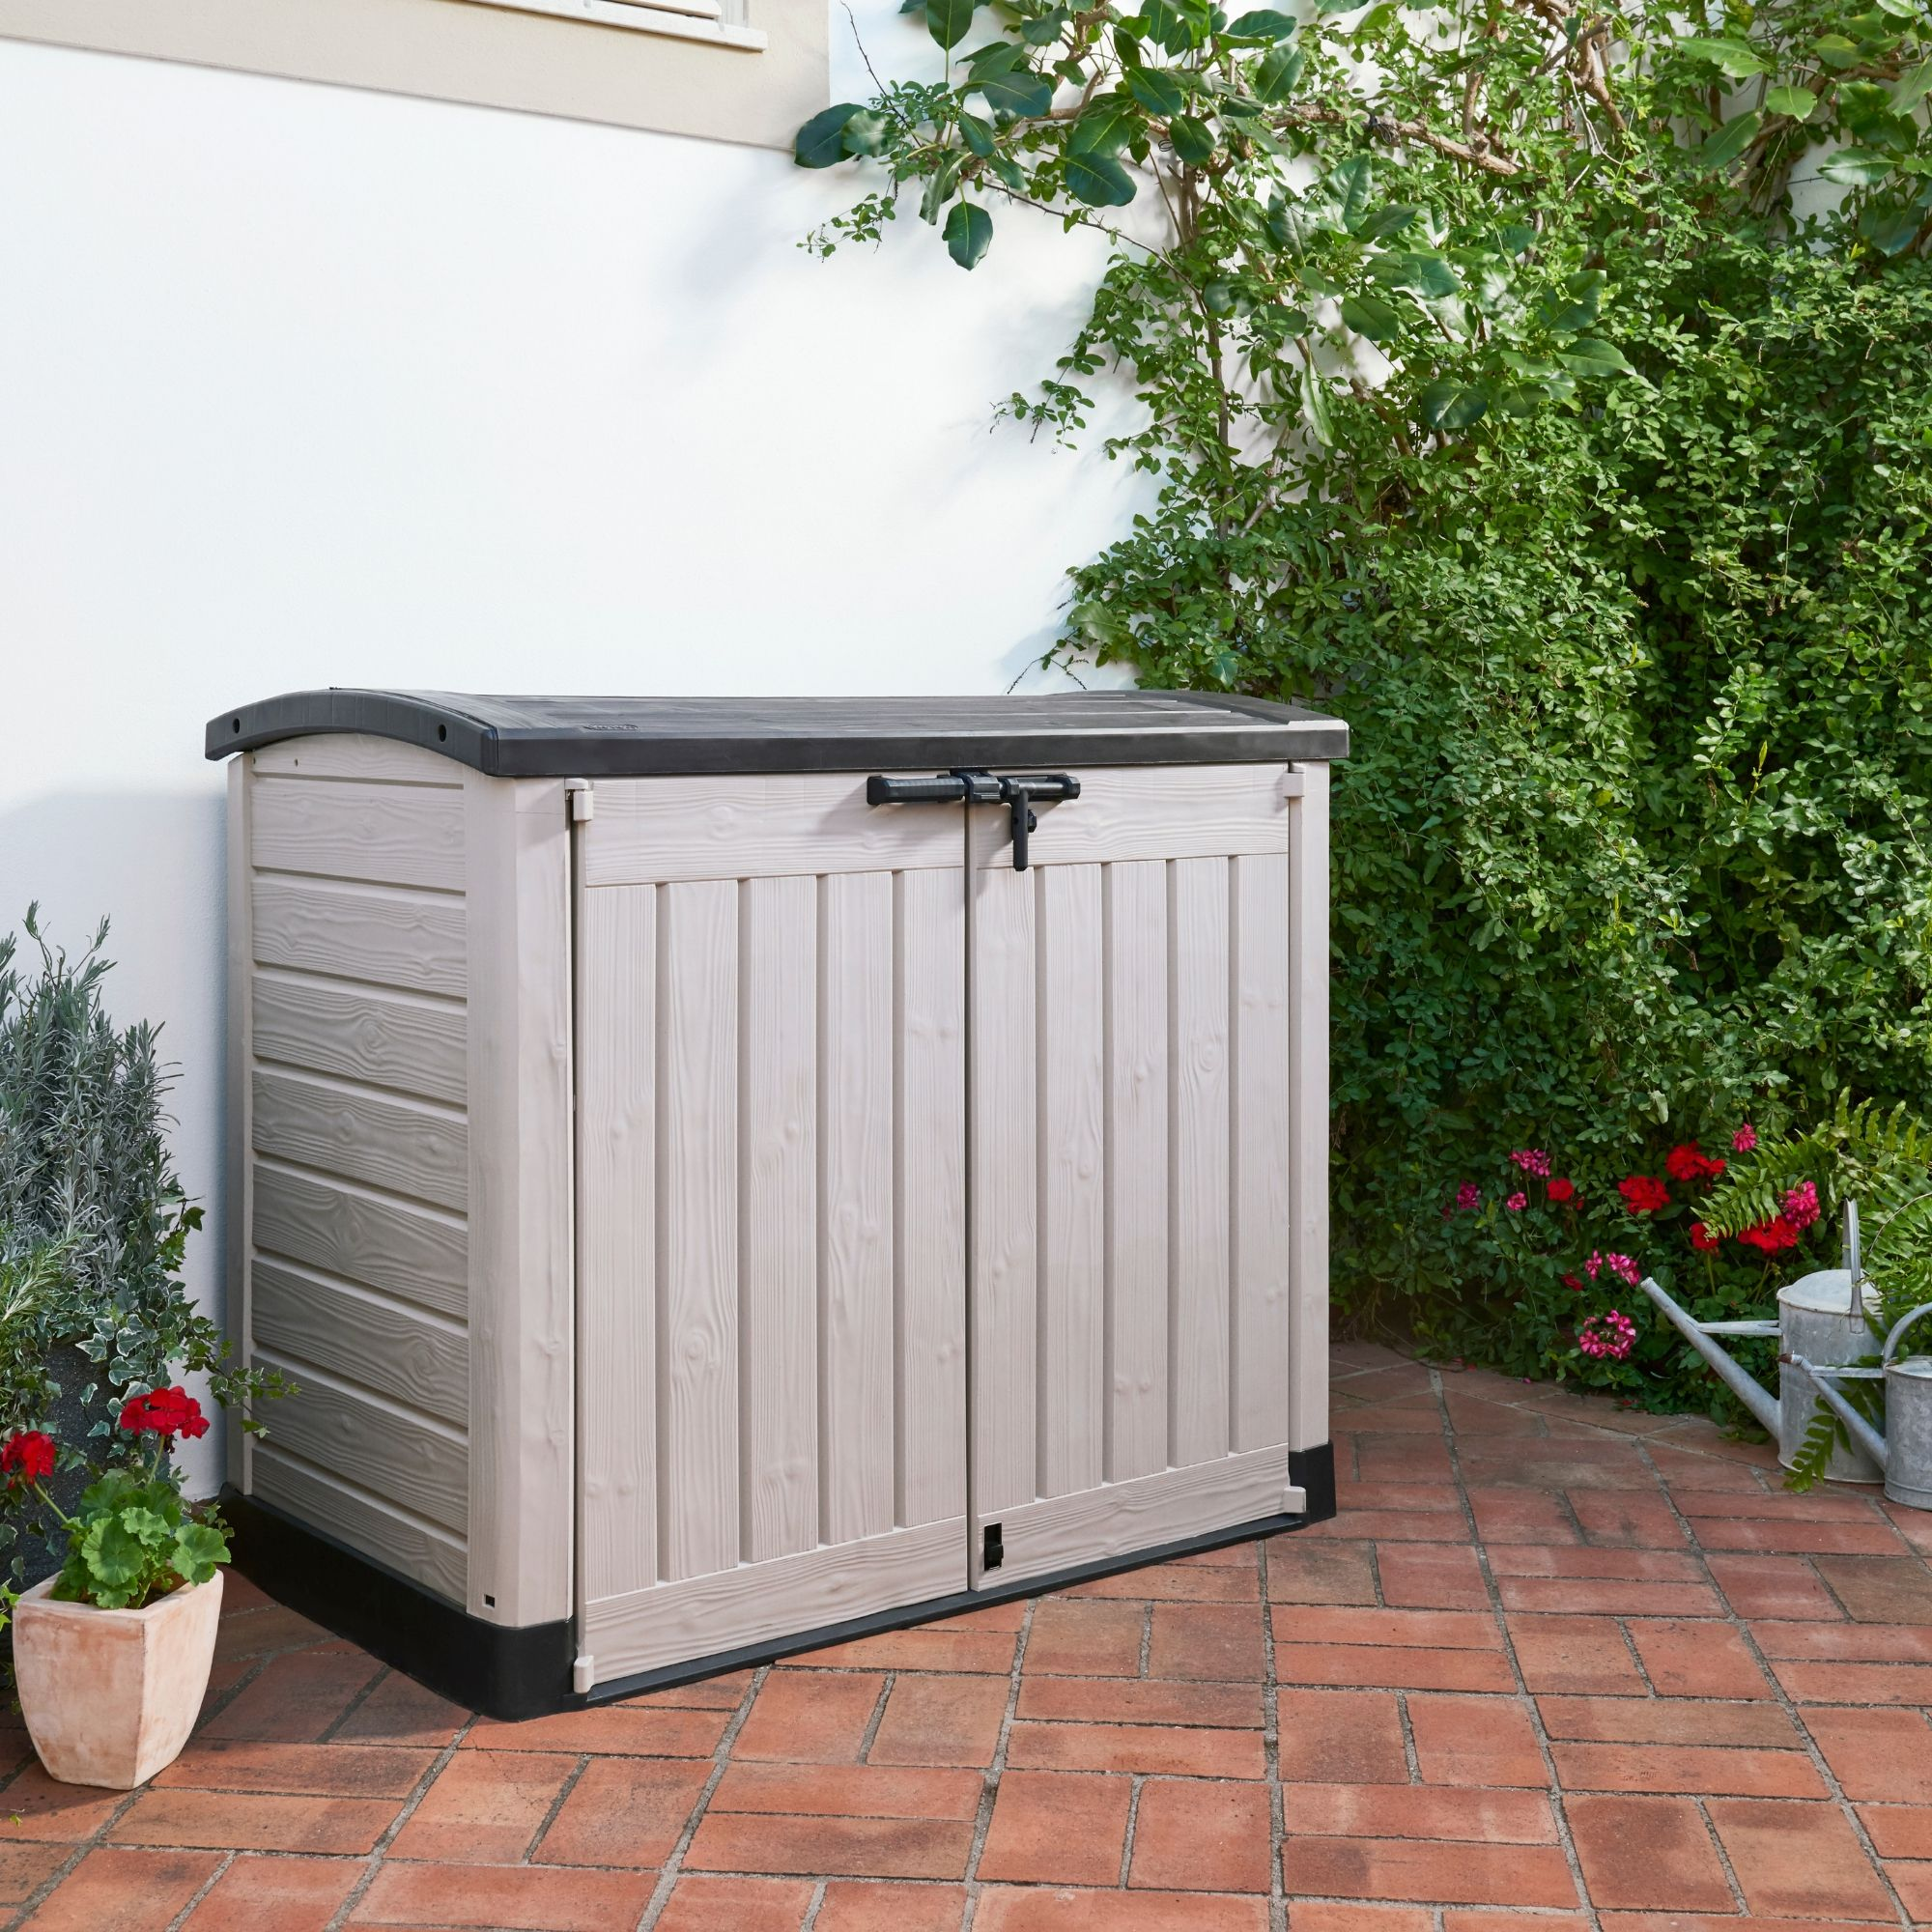 Keter Store It Out Arc Plastic Garden Storage Box Departments Diy At B Q